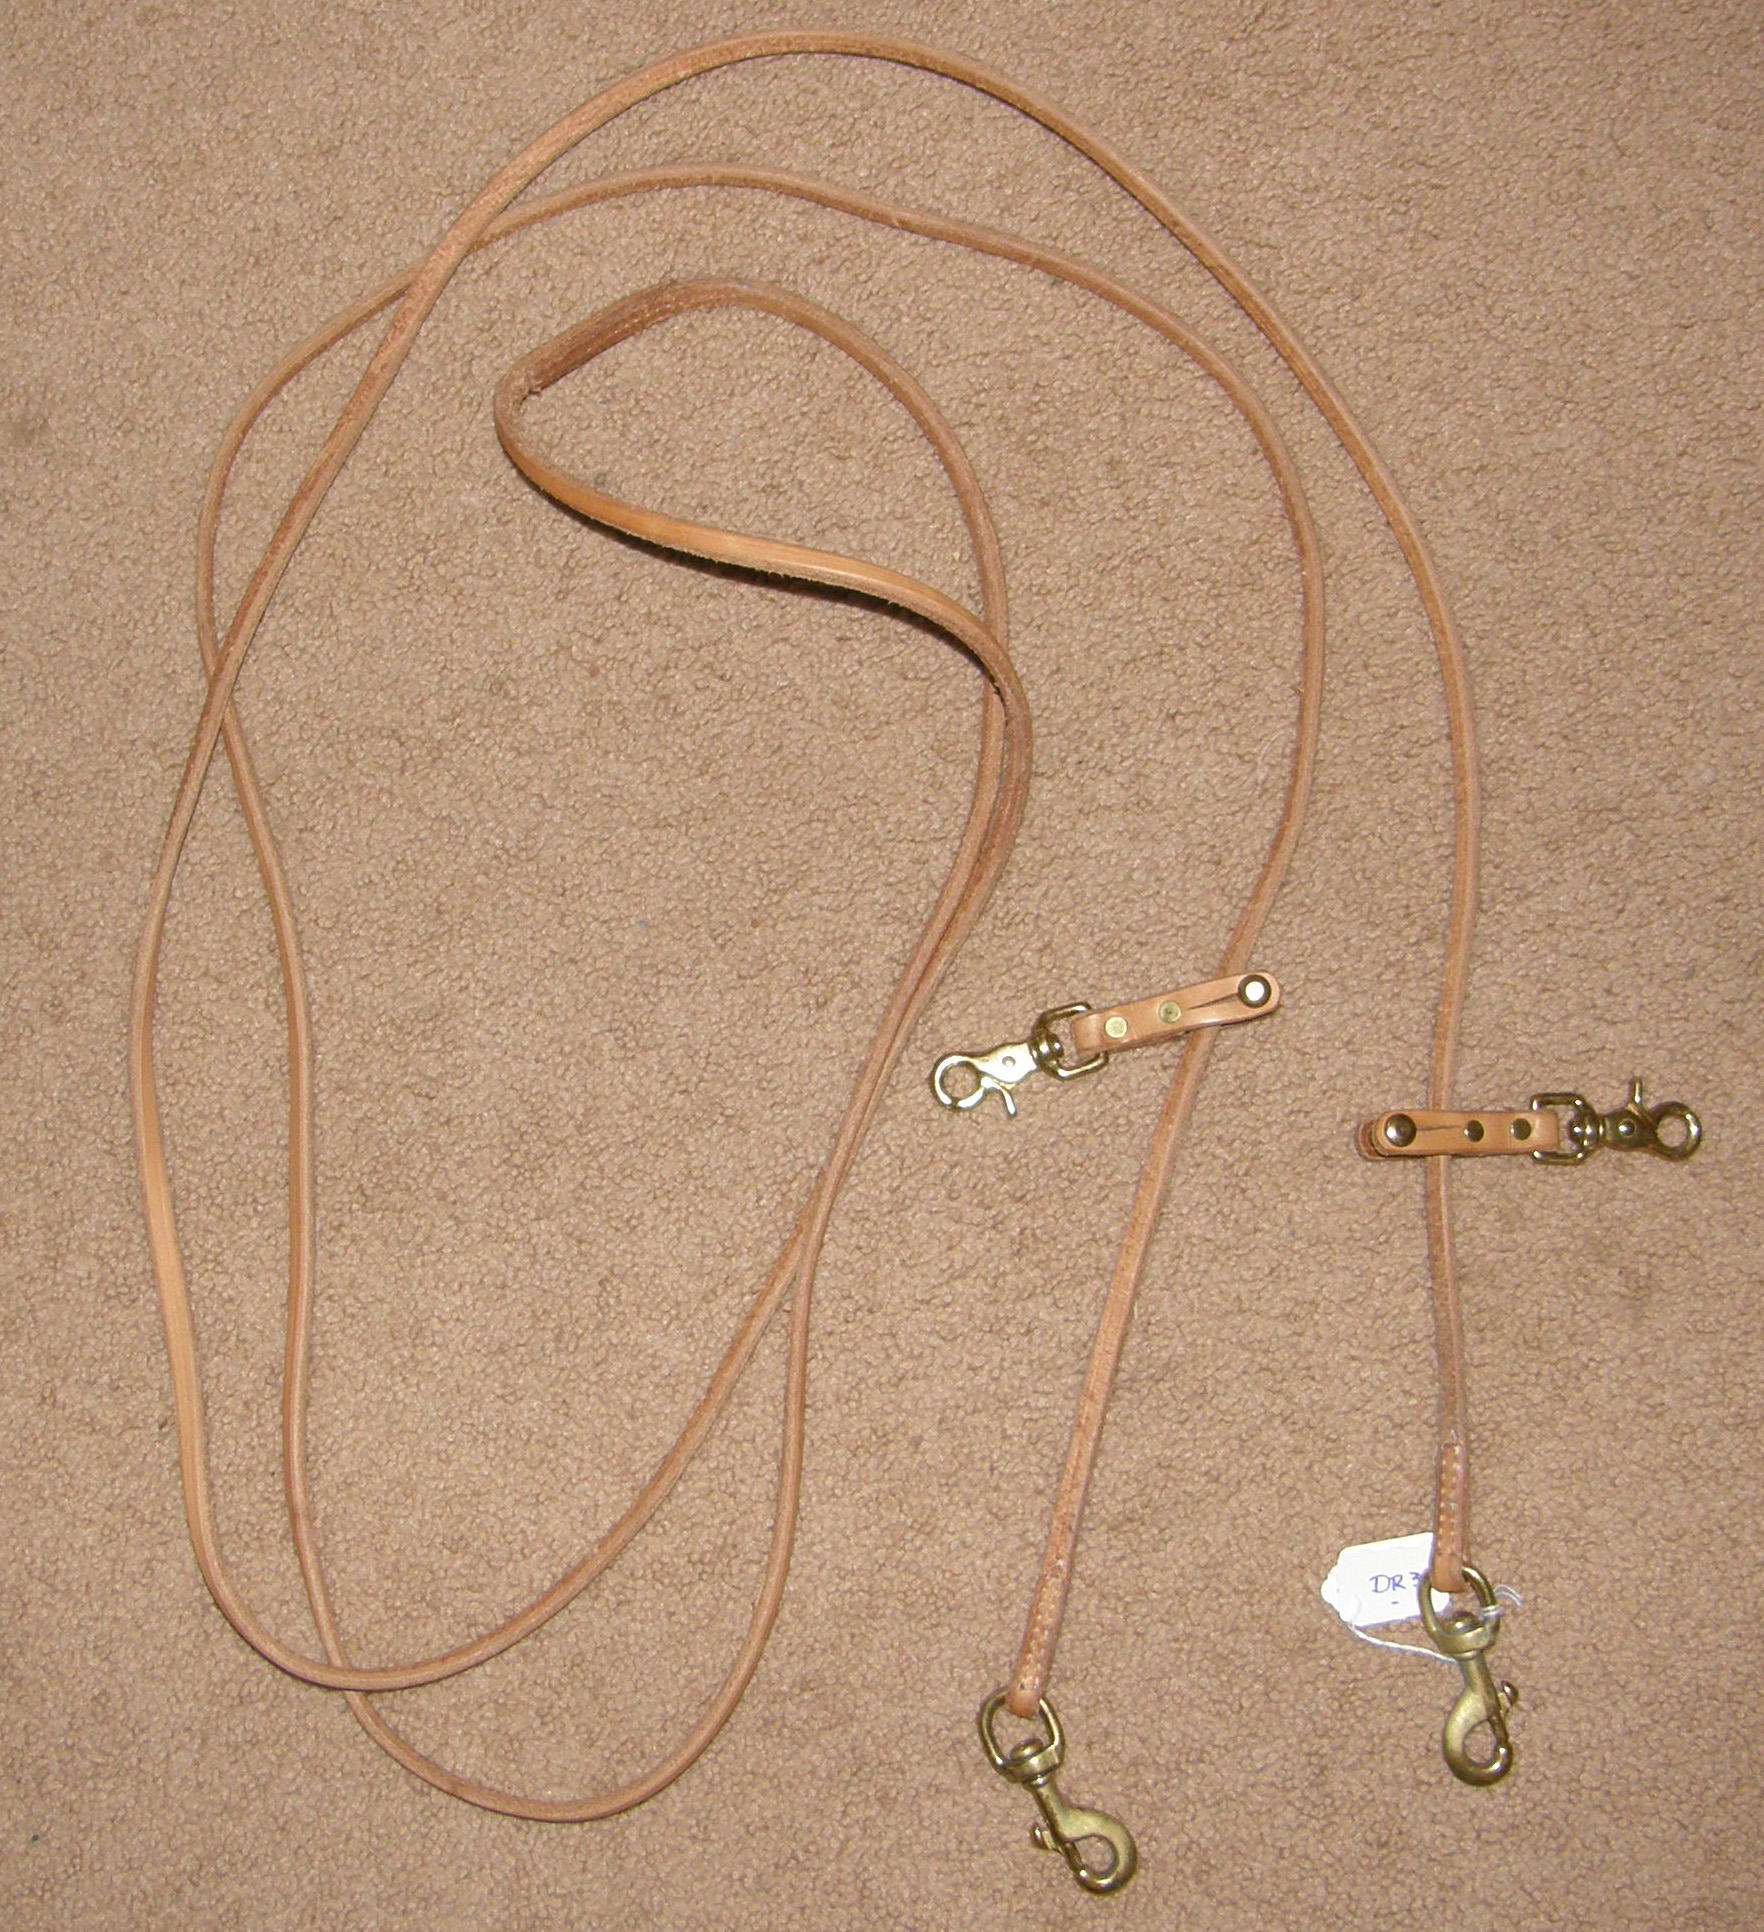 Tory? Harness Leather Draw Reins Pulley Draw Reins with Snaps Draw Reins